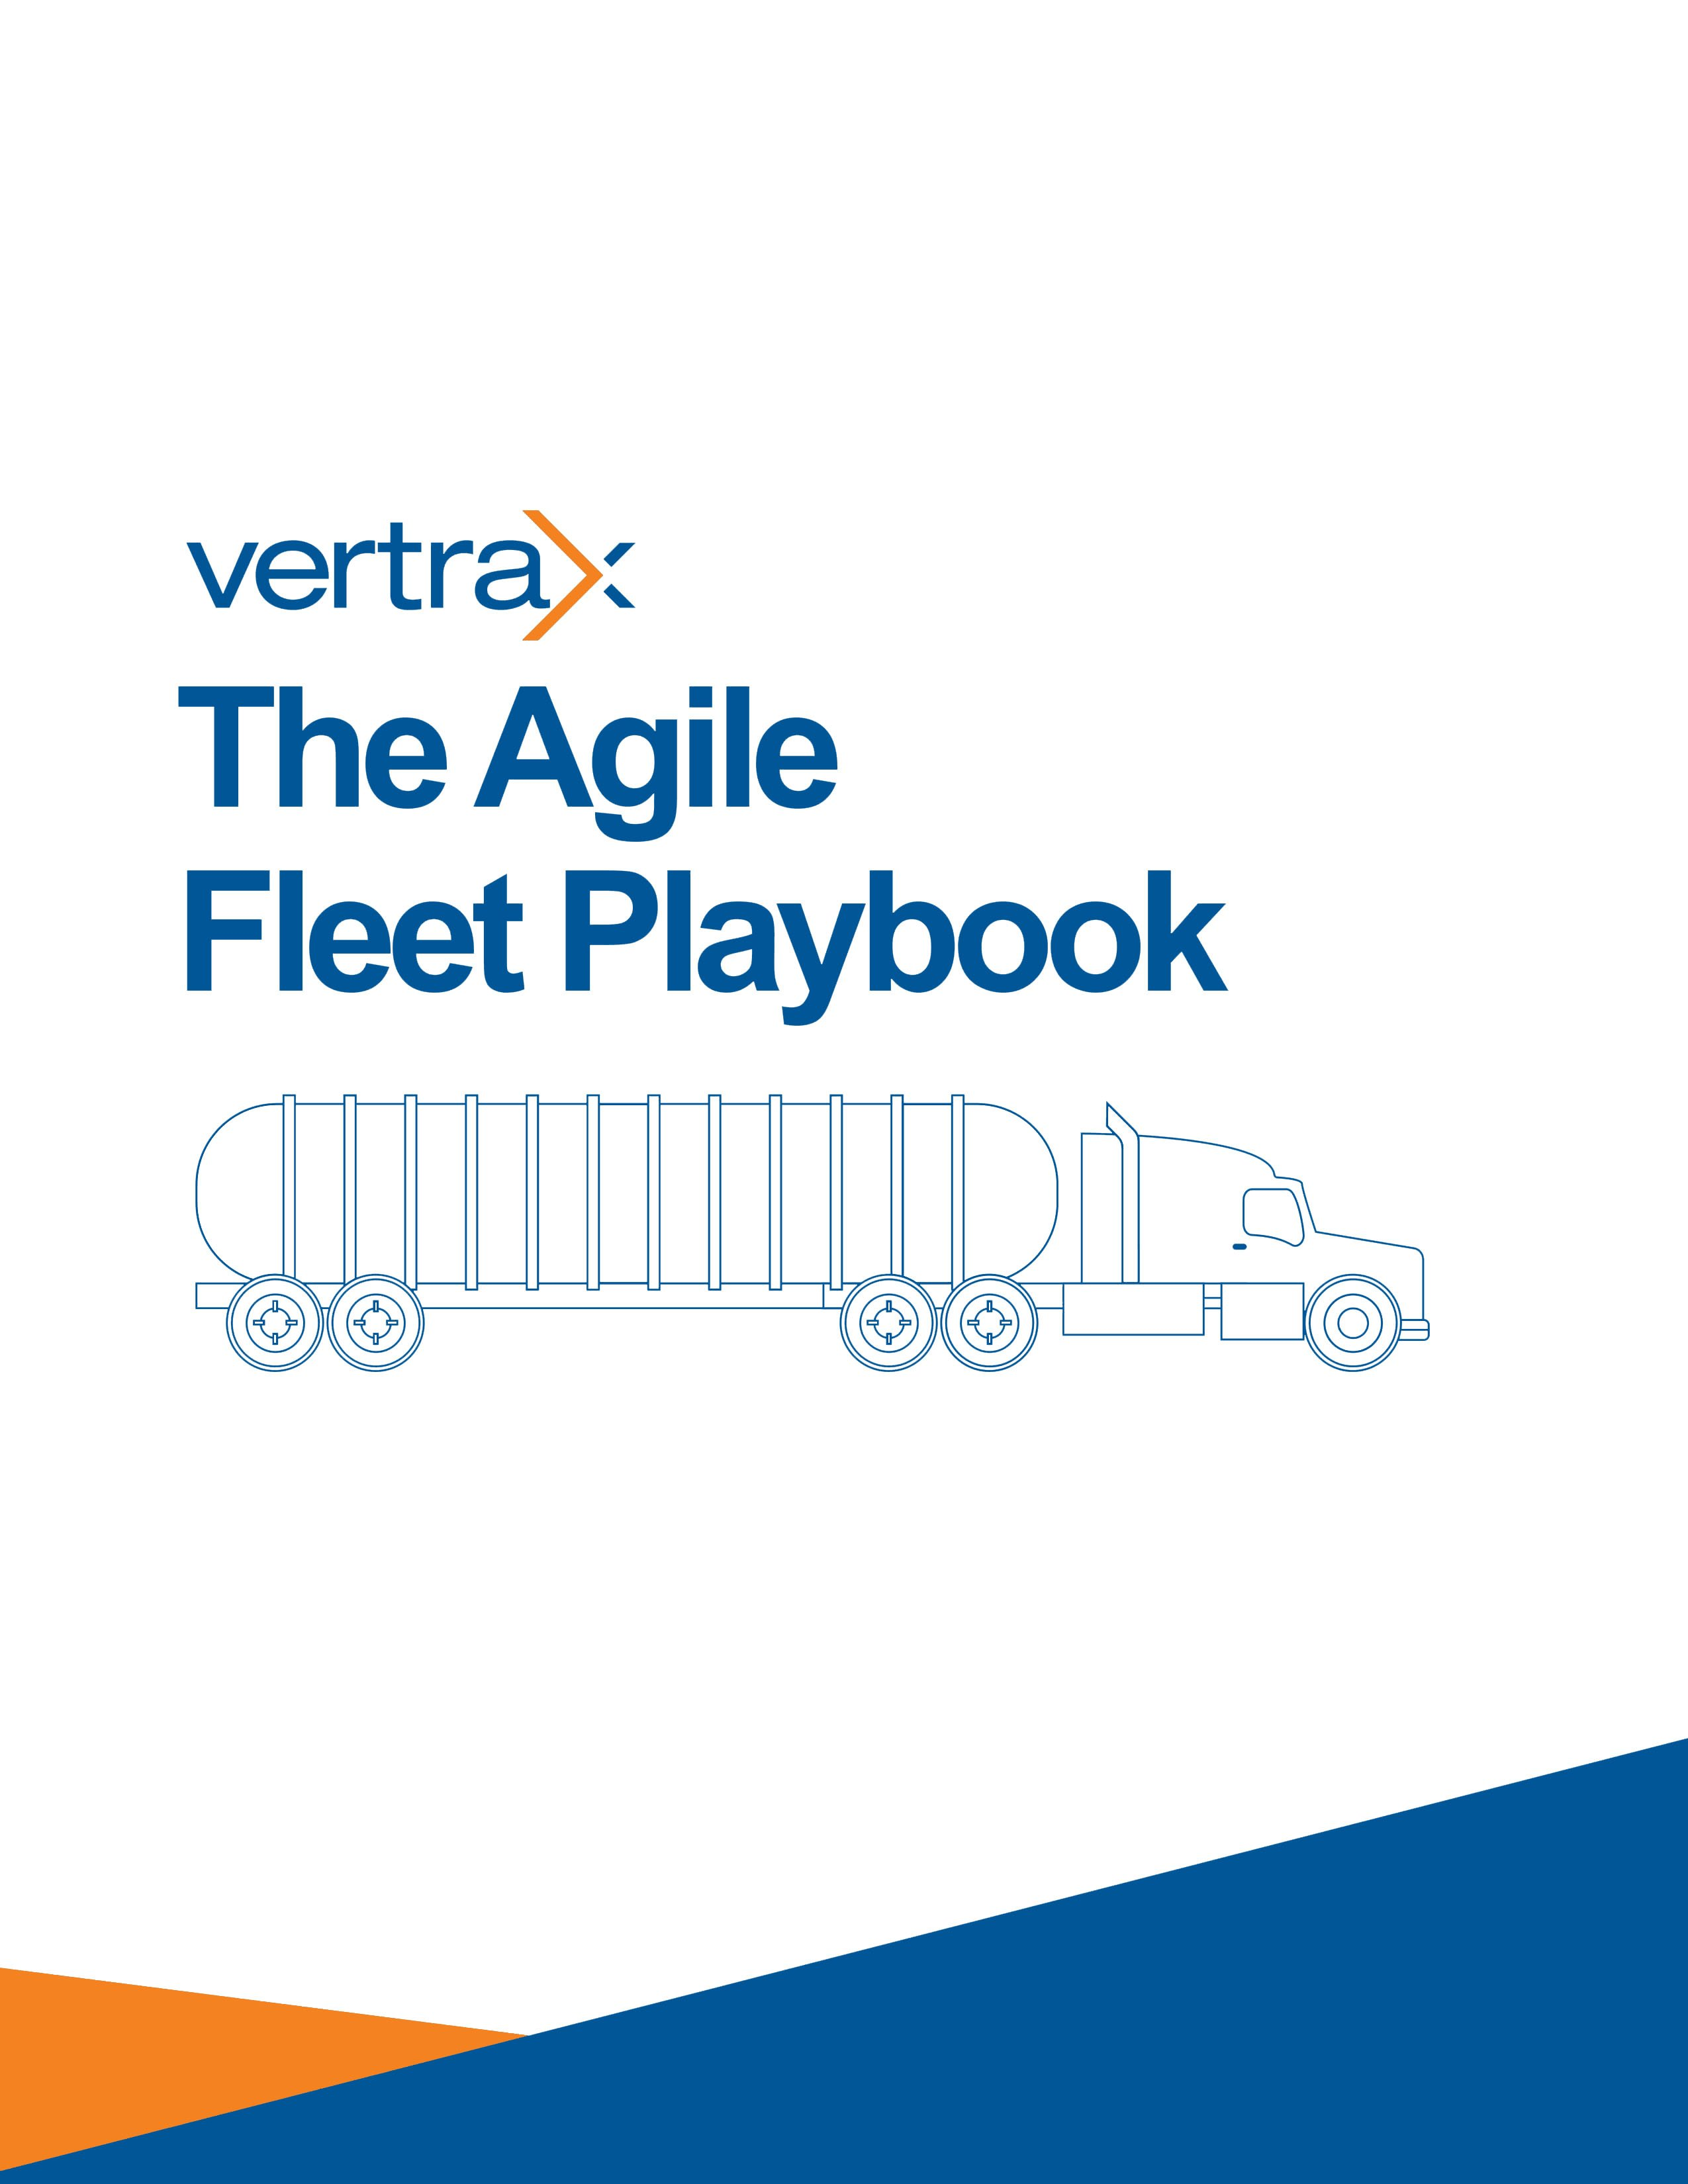 Vertrax: The Agile Fleet Playbook